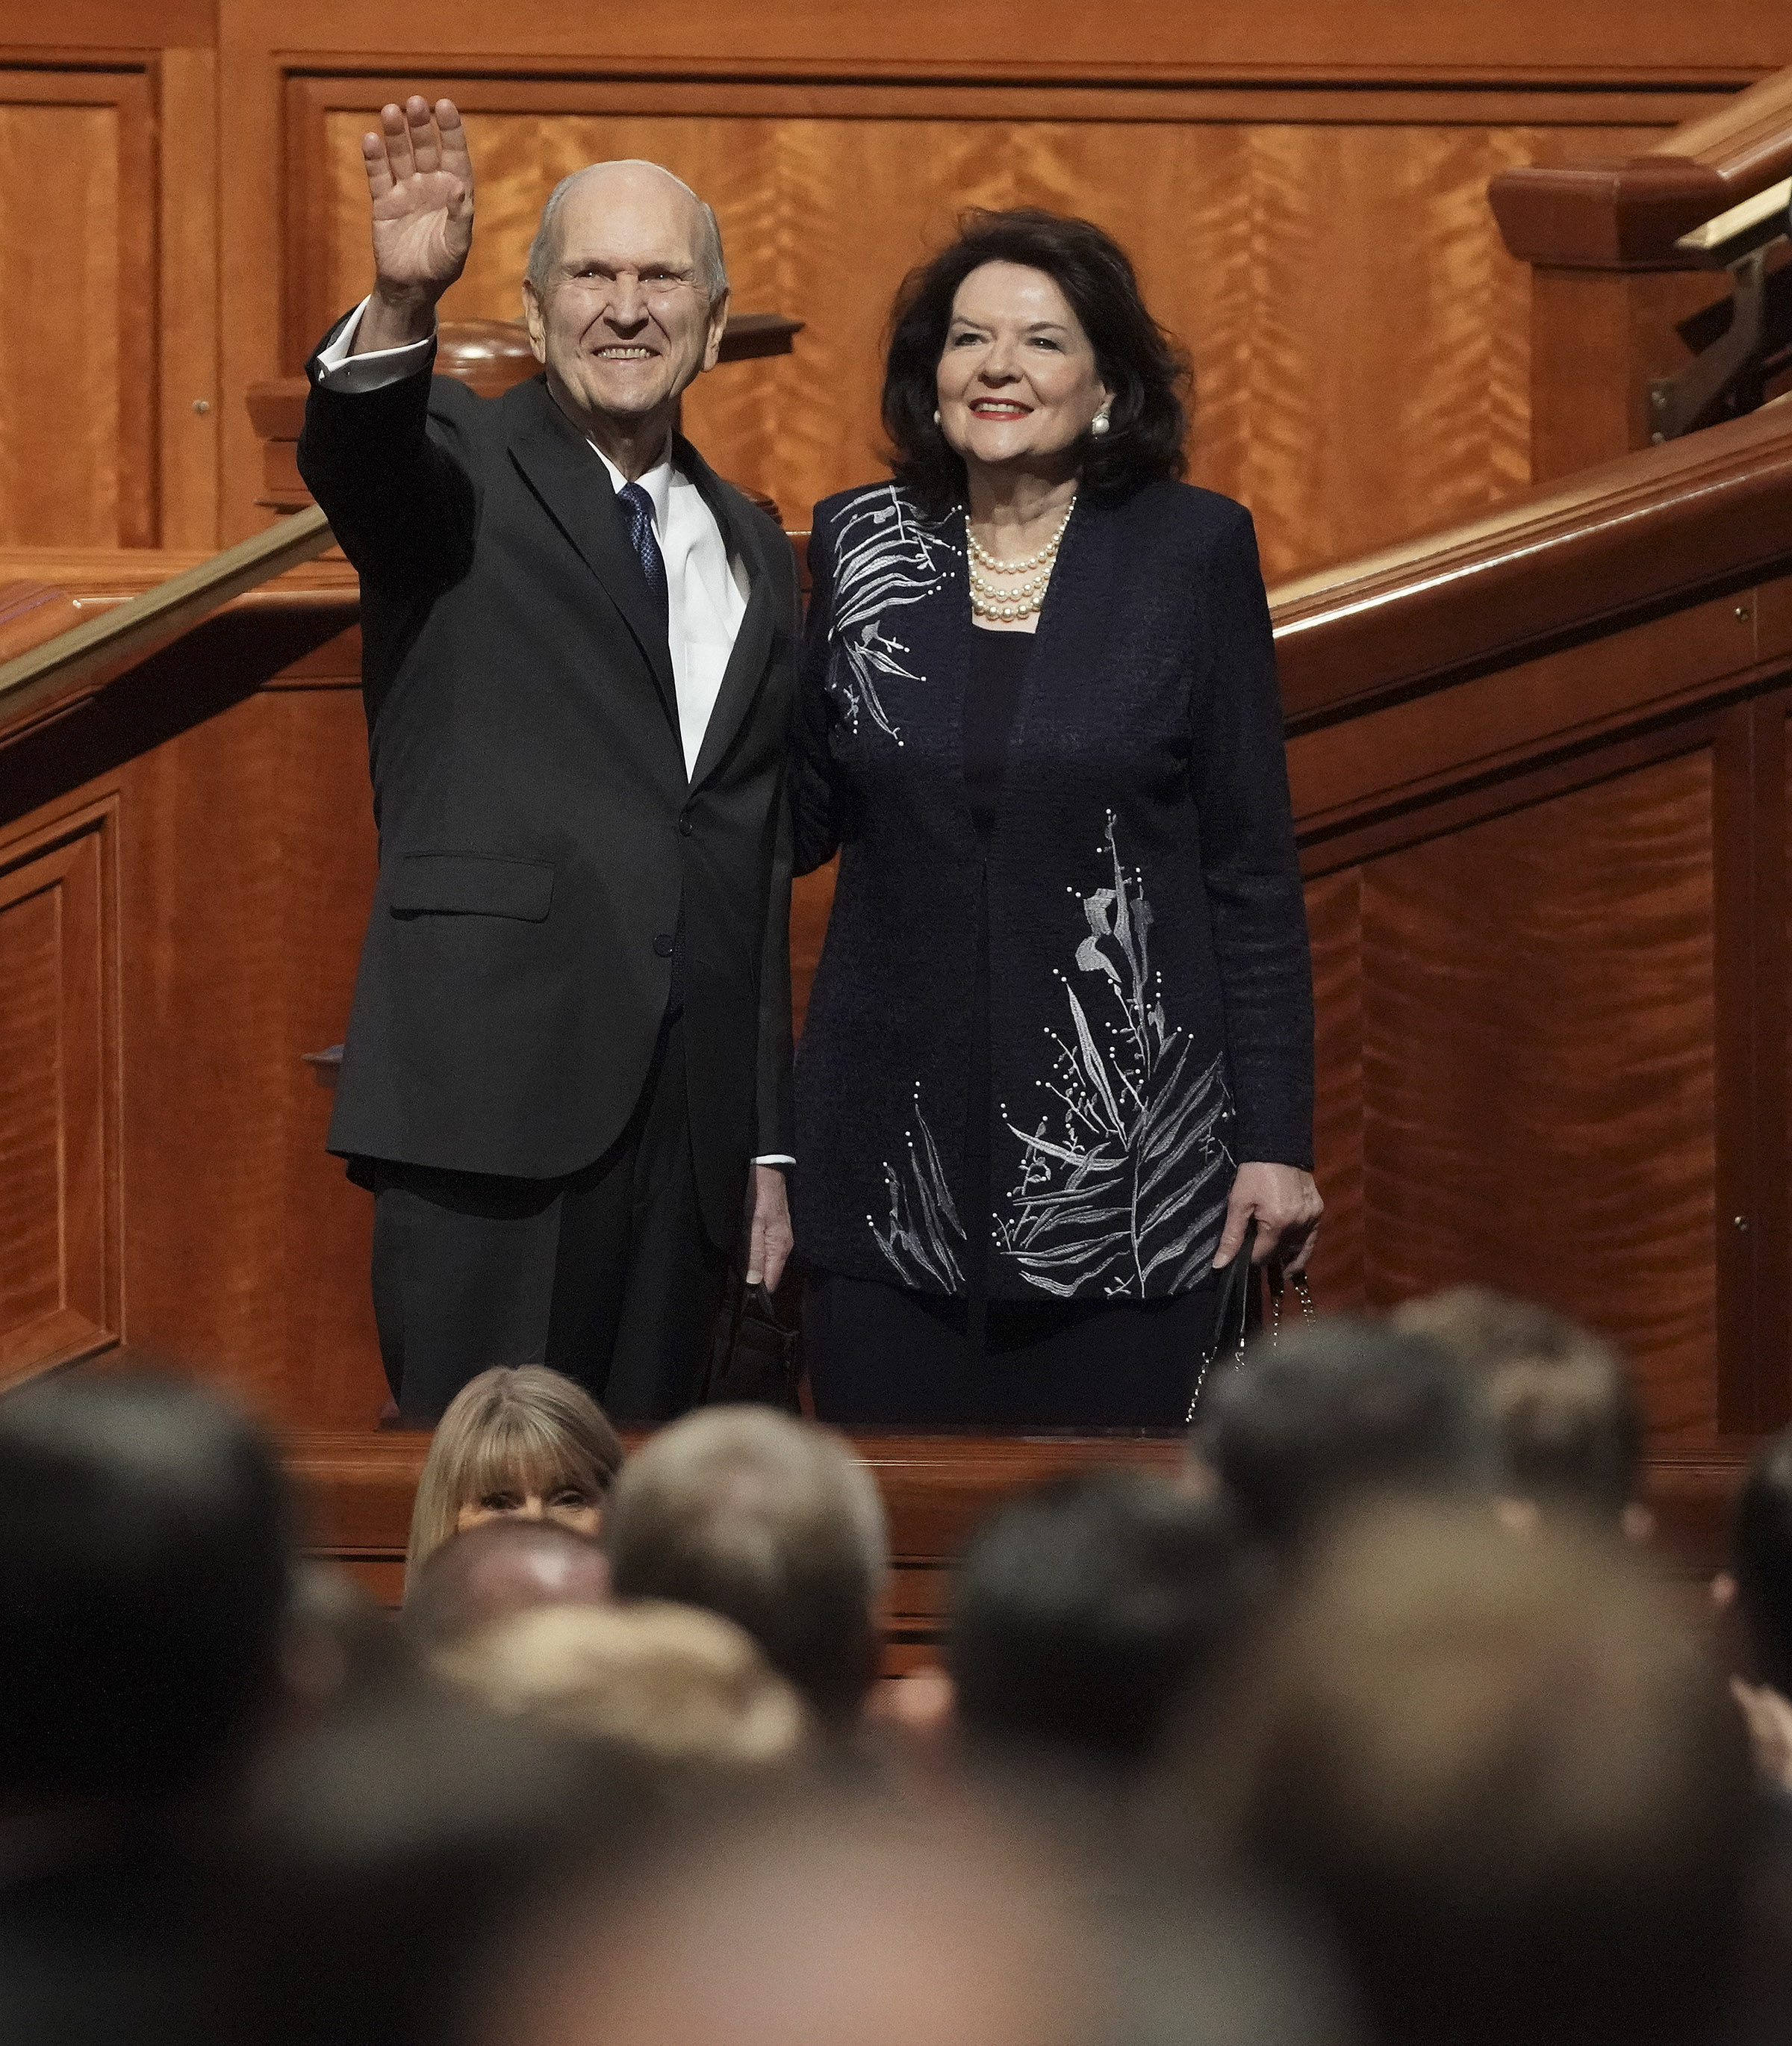 President Russell M. Nelson and his wife, Sister Wendy Nelson, wave to attendees after the Sunday morning session of the 189th Semiannual General Conference of The Church of Jesus Christ of Latter-day Saints in Salt Lake City on Sunday, Oct. 6, 2019.